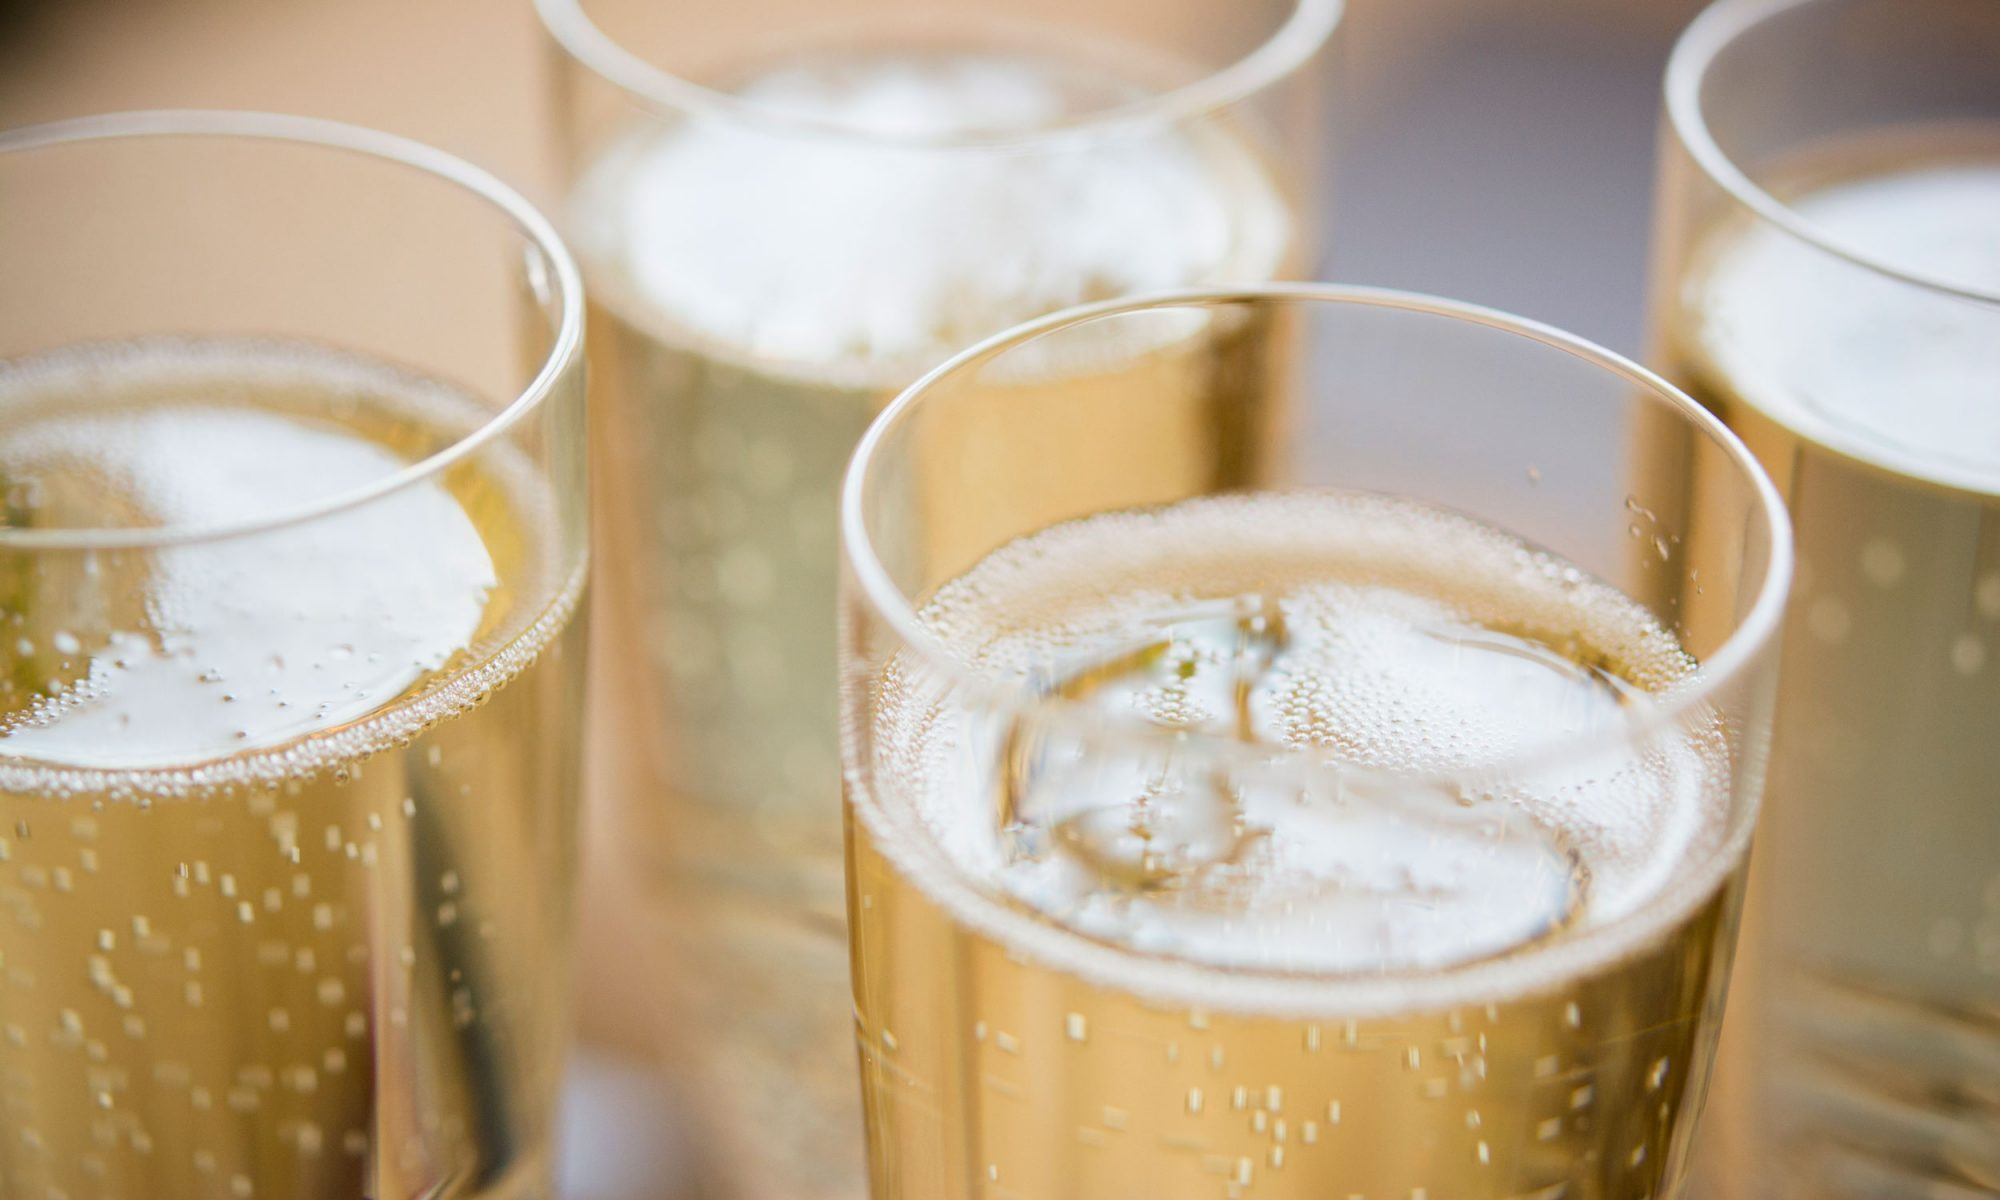 EC: I Tried 12 Cheap Sparkling Wines and Here's the Best One message-editor%2F1512407135695-champagne-inset